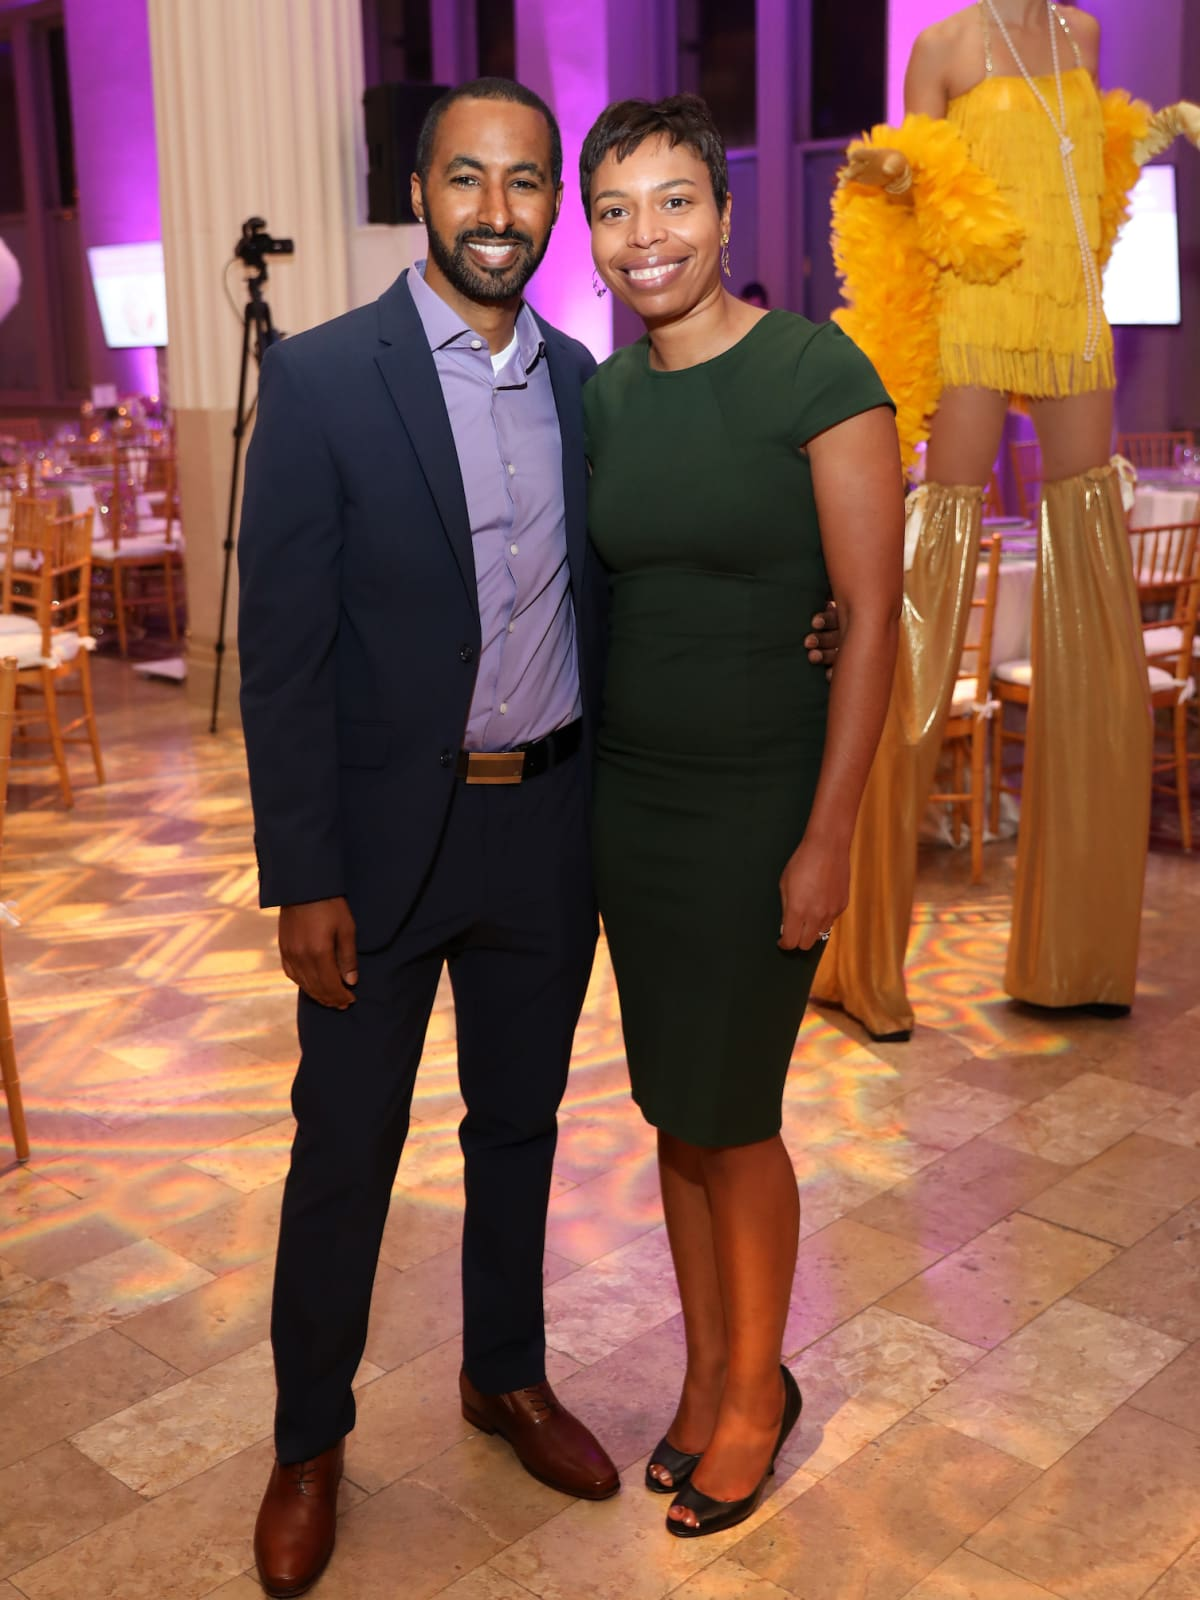 Houston, March of Dimes Signature Chefs, November 2017, Tehquin Tanner and Dr. Lisette Tanner